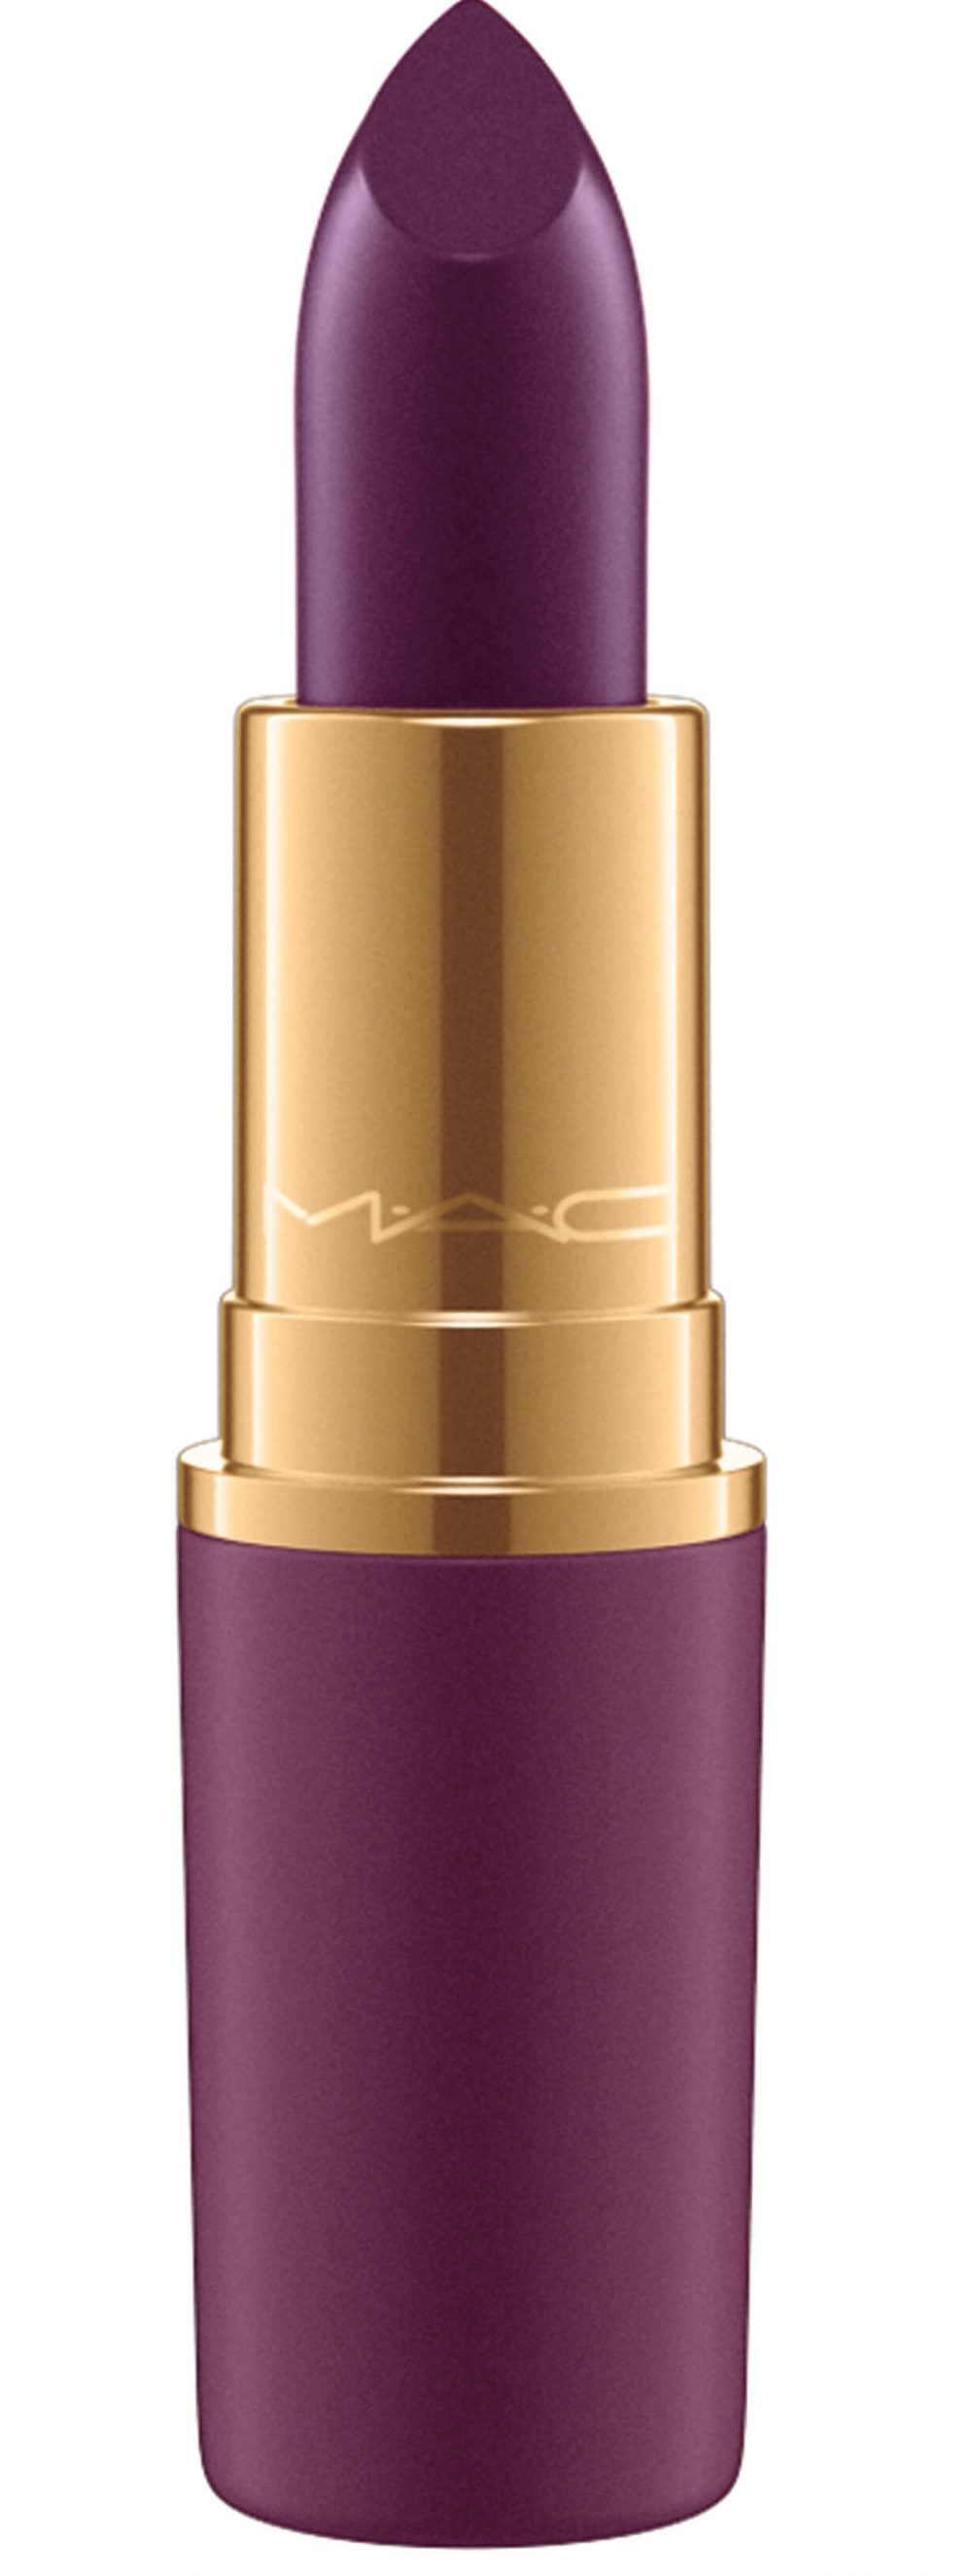 mac_holidaycolour17_lipstick_leapofdelight_white_300dpicmyk_1-1_fotor